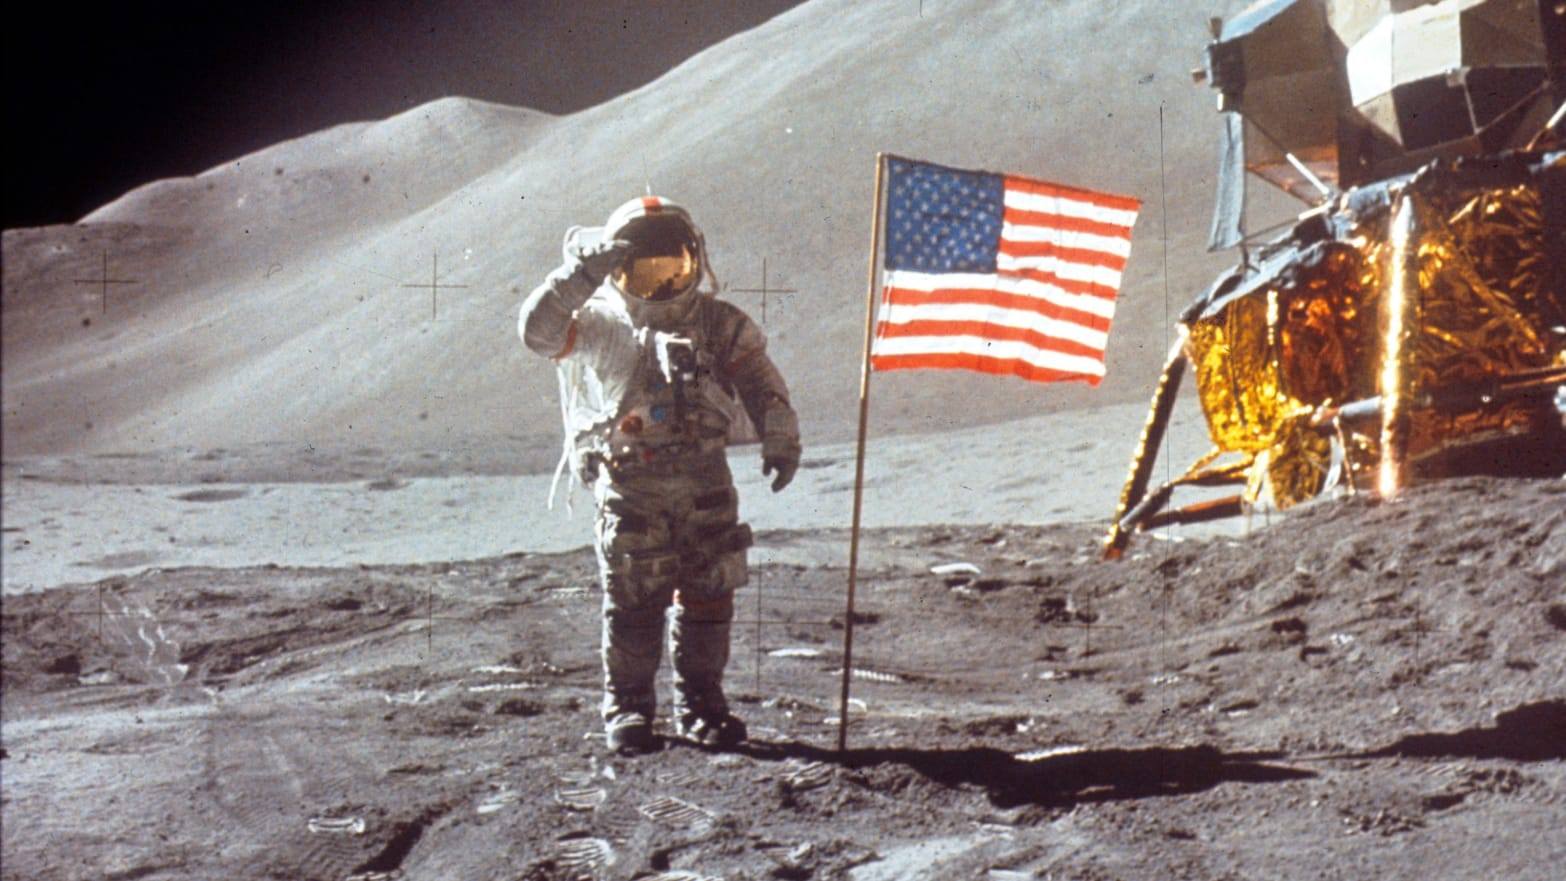 photo of american astronaut on the moon wilbur ross moon landing space force donald trump jim bridenstine china lunar mining russia